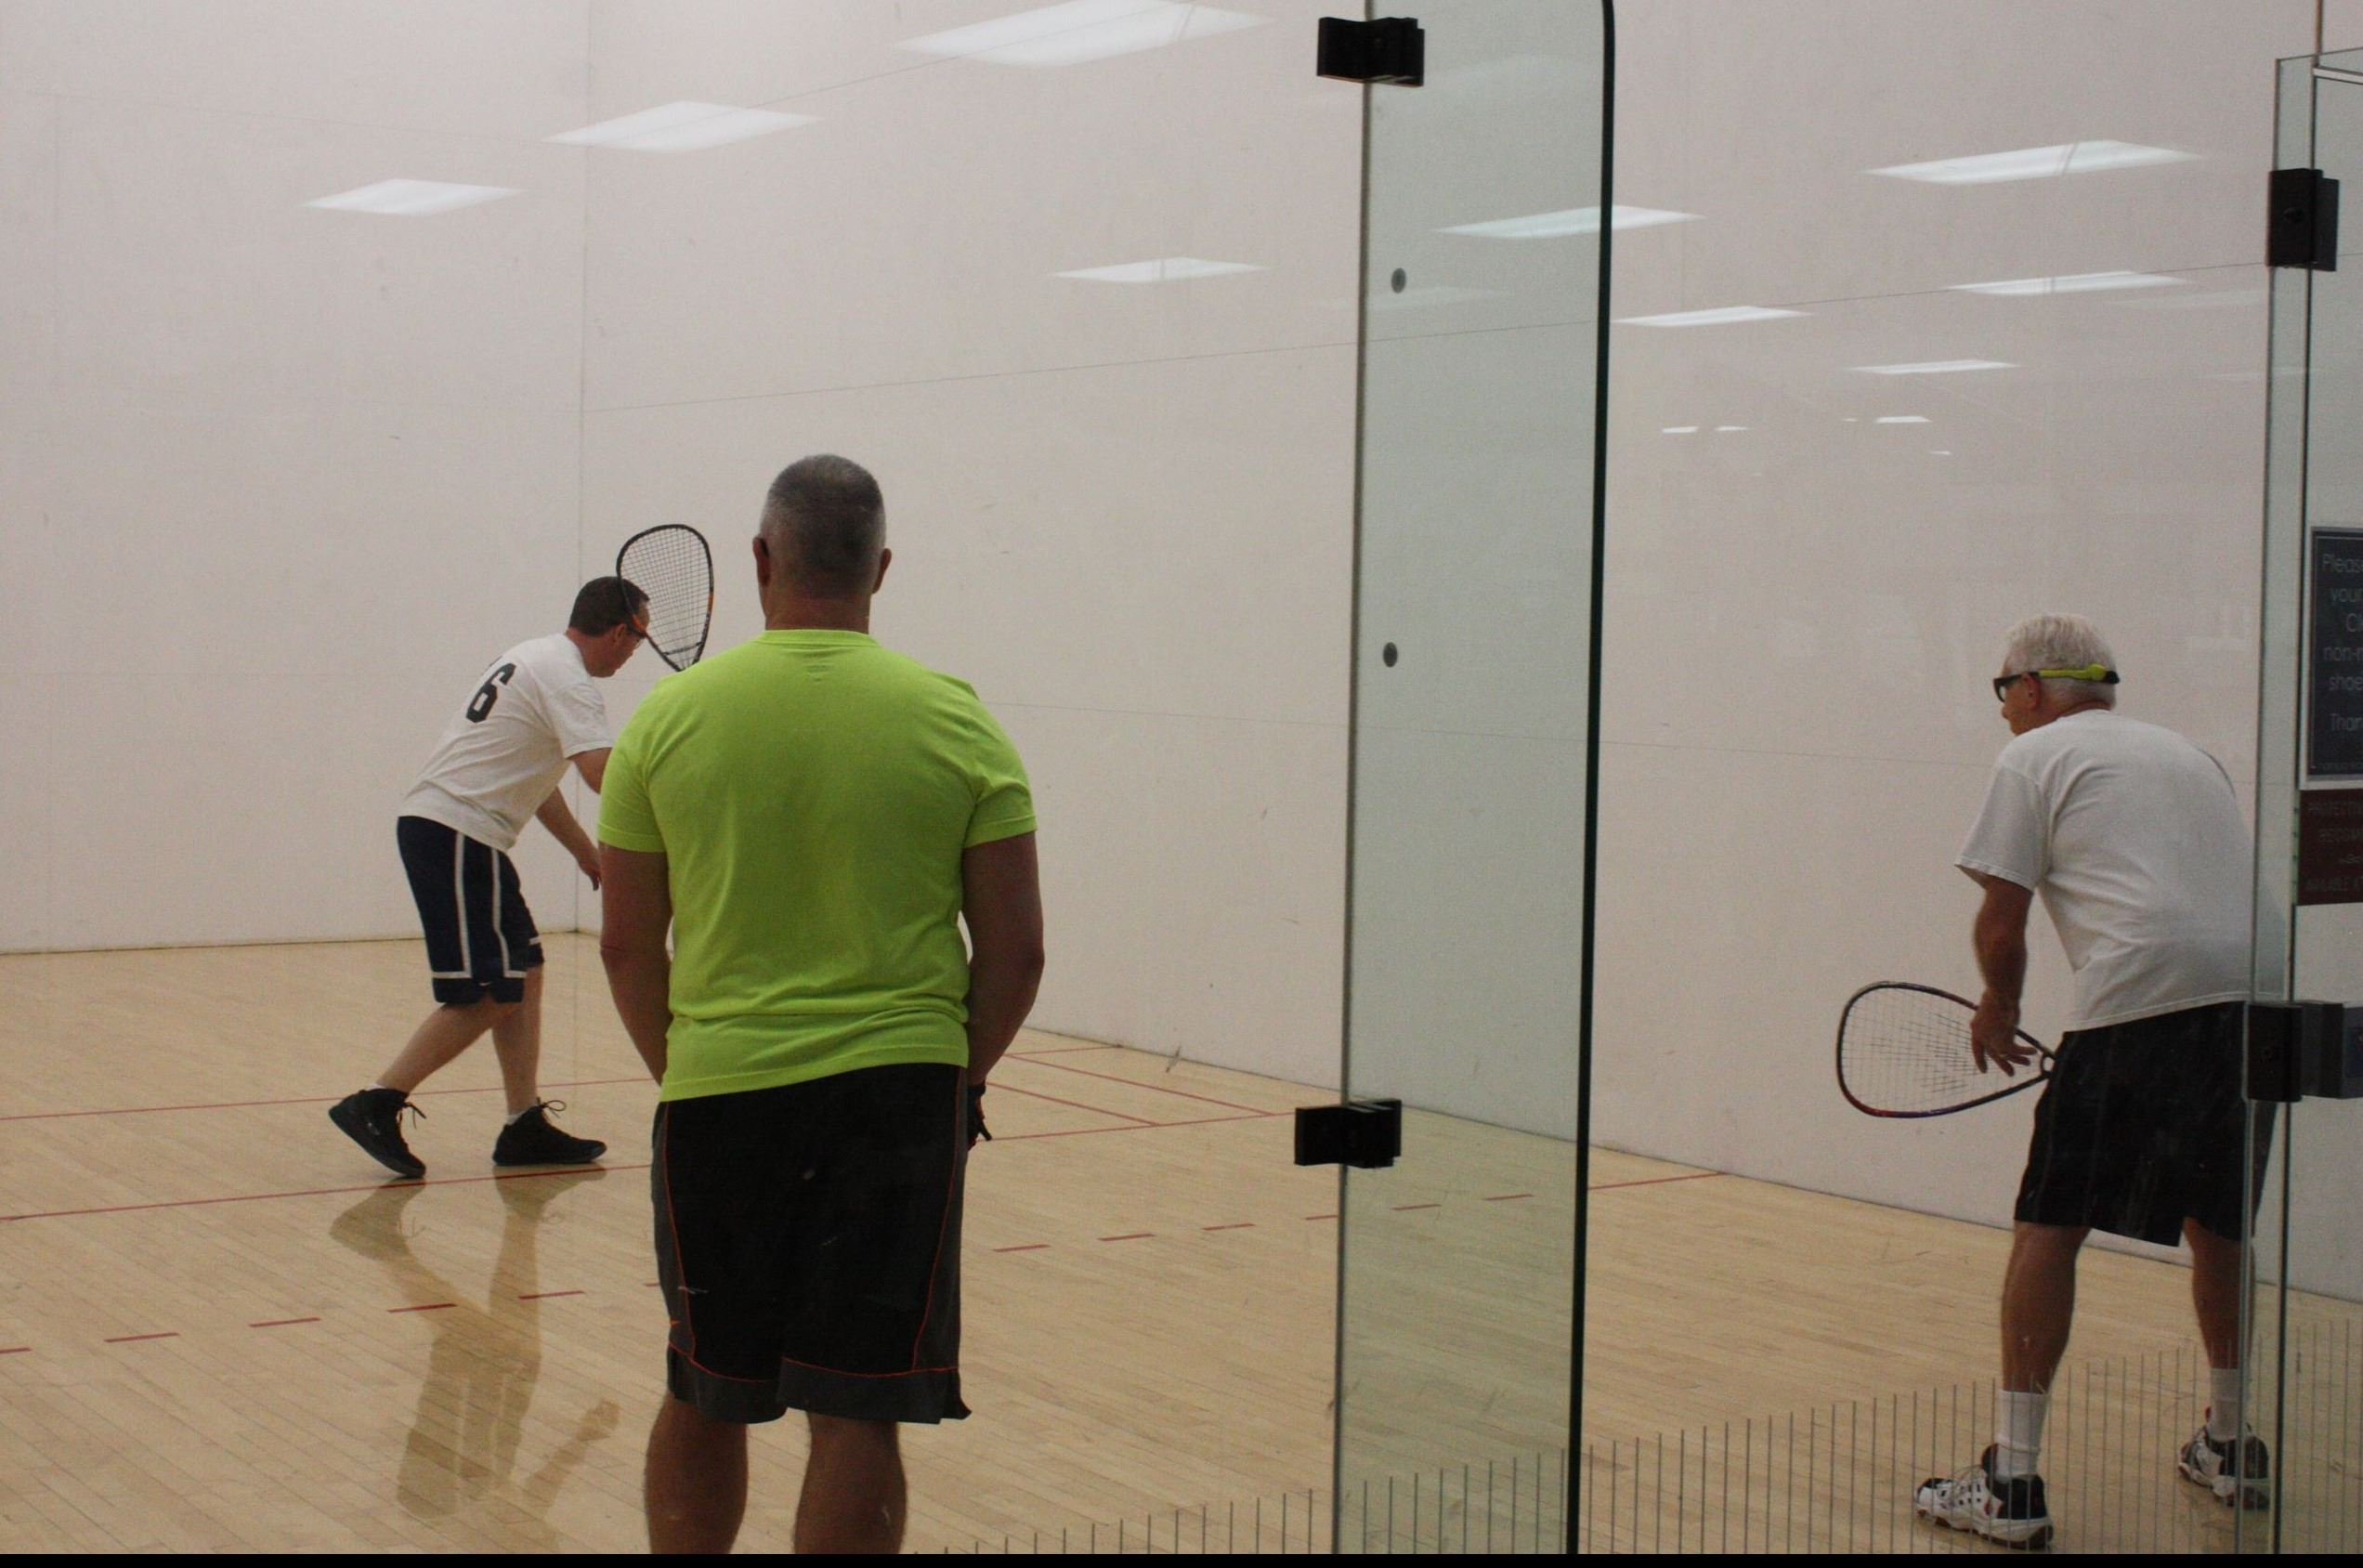 racquetball players